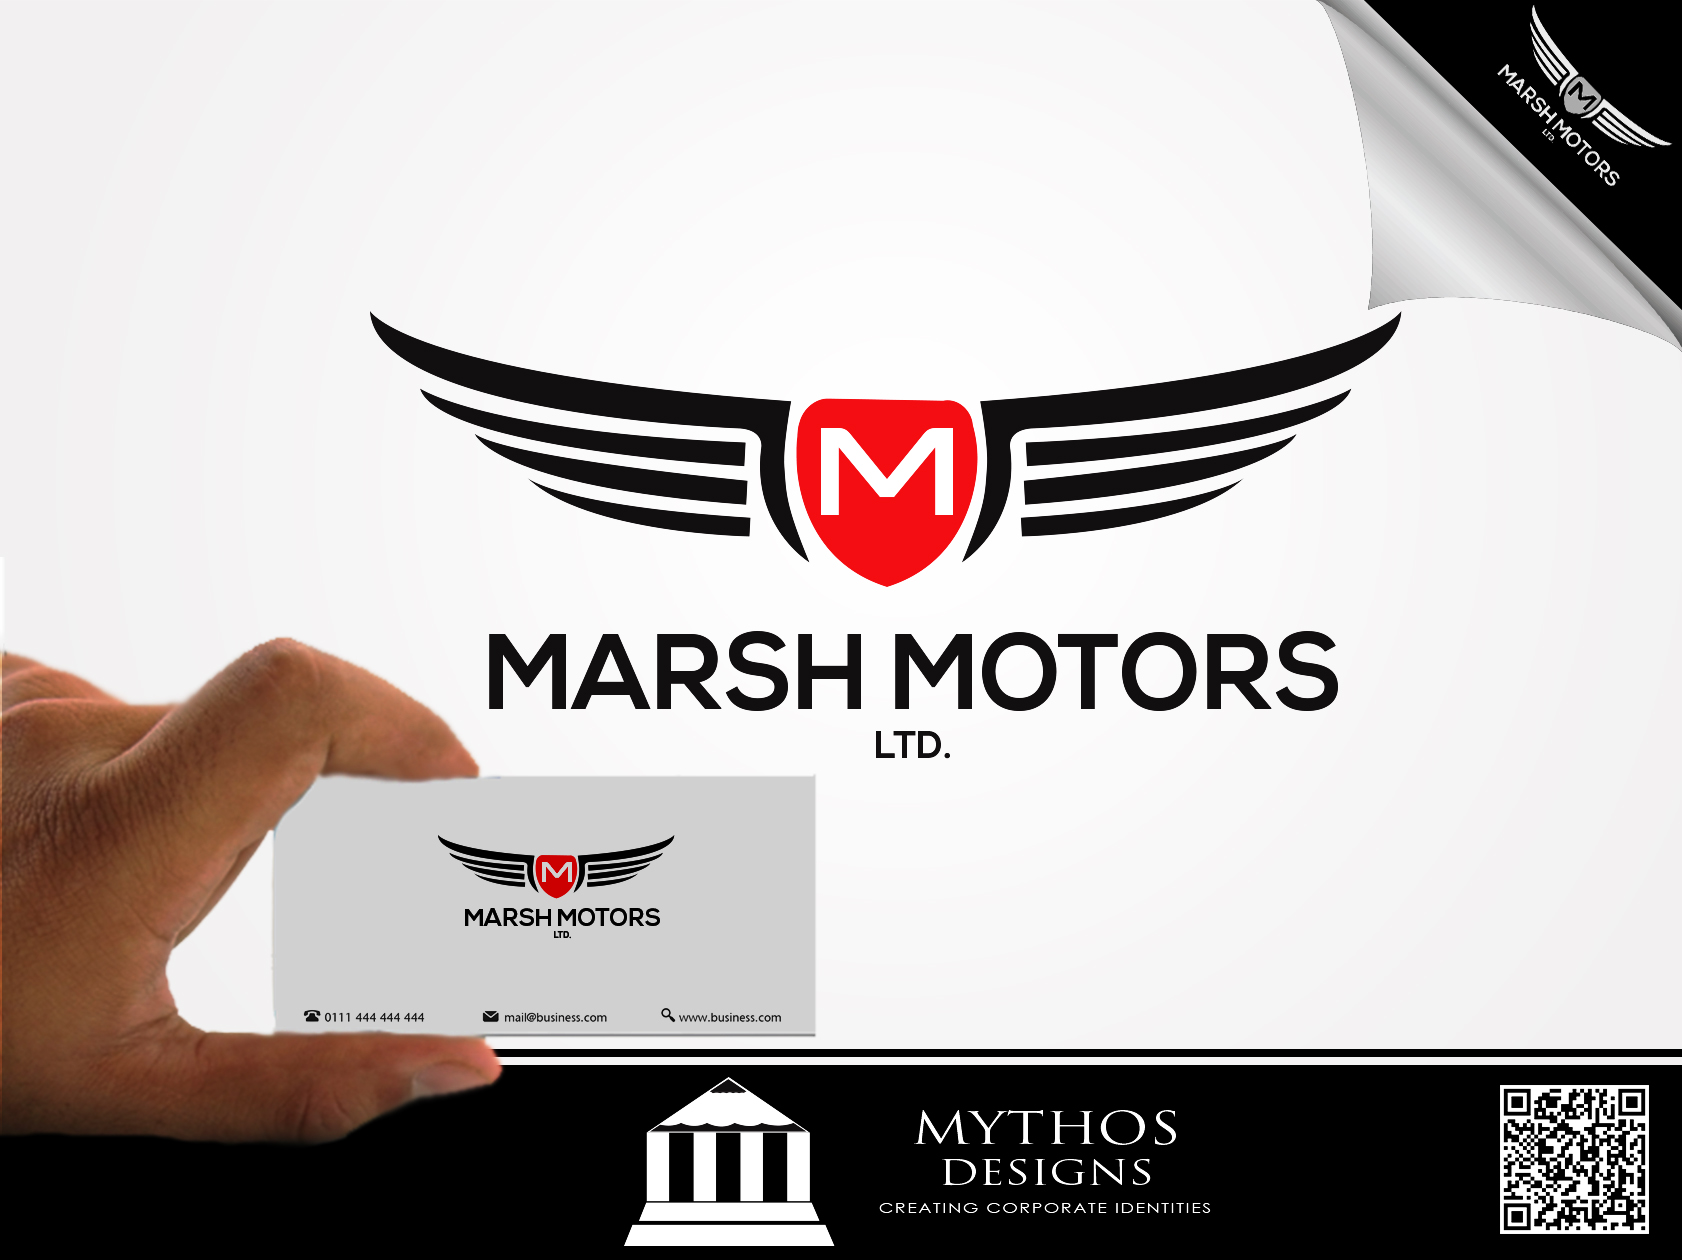 Logo Design by Mythos Designs - Entry No. 36 in the Logo Design Contest Marsh Motors Chrysler Logo Design.